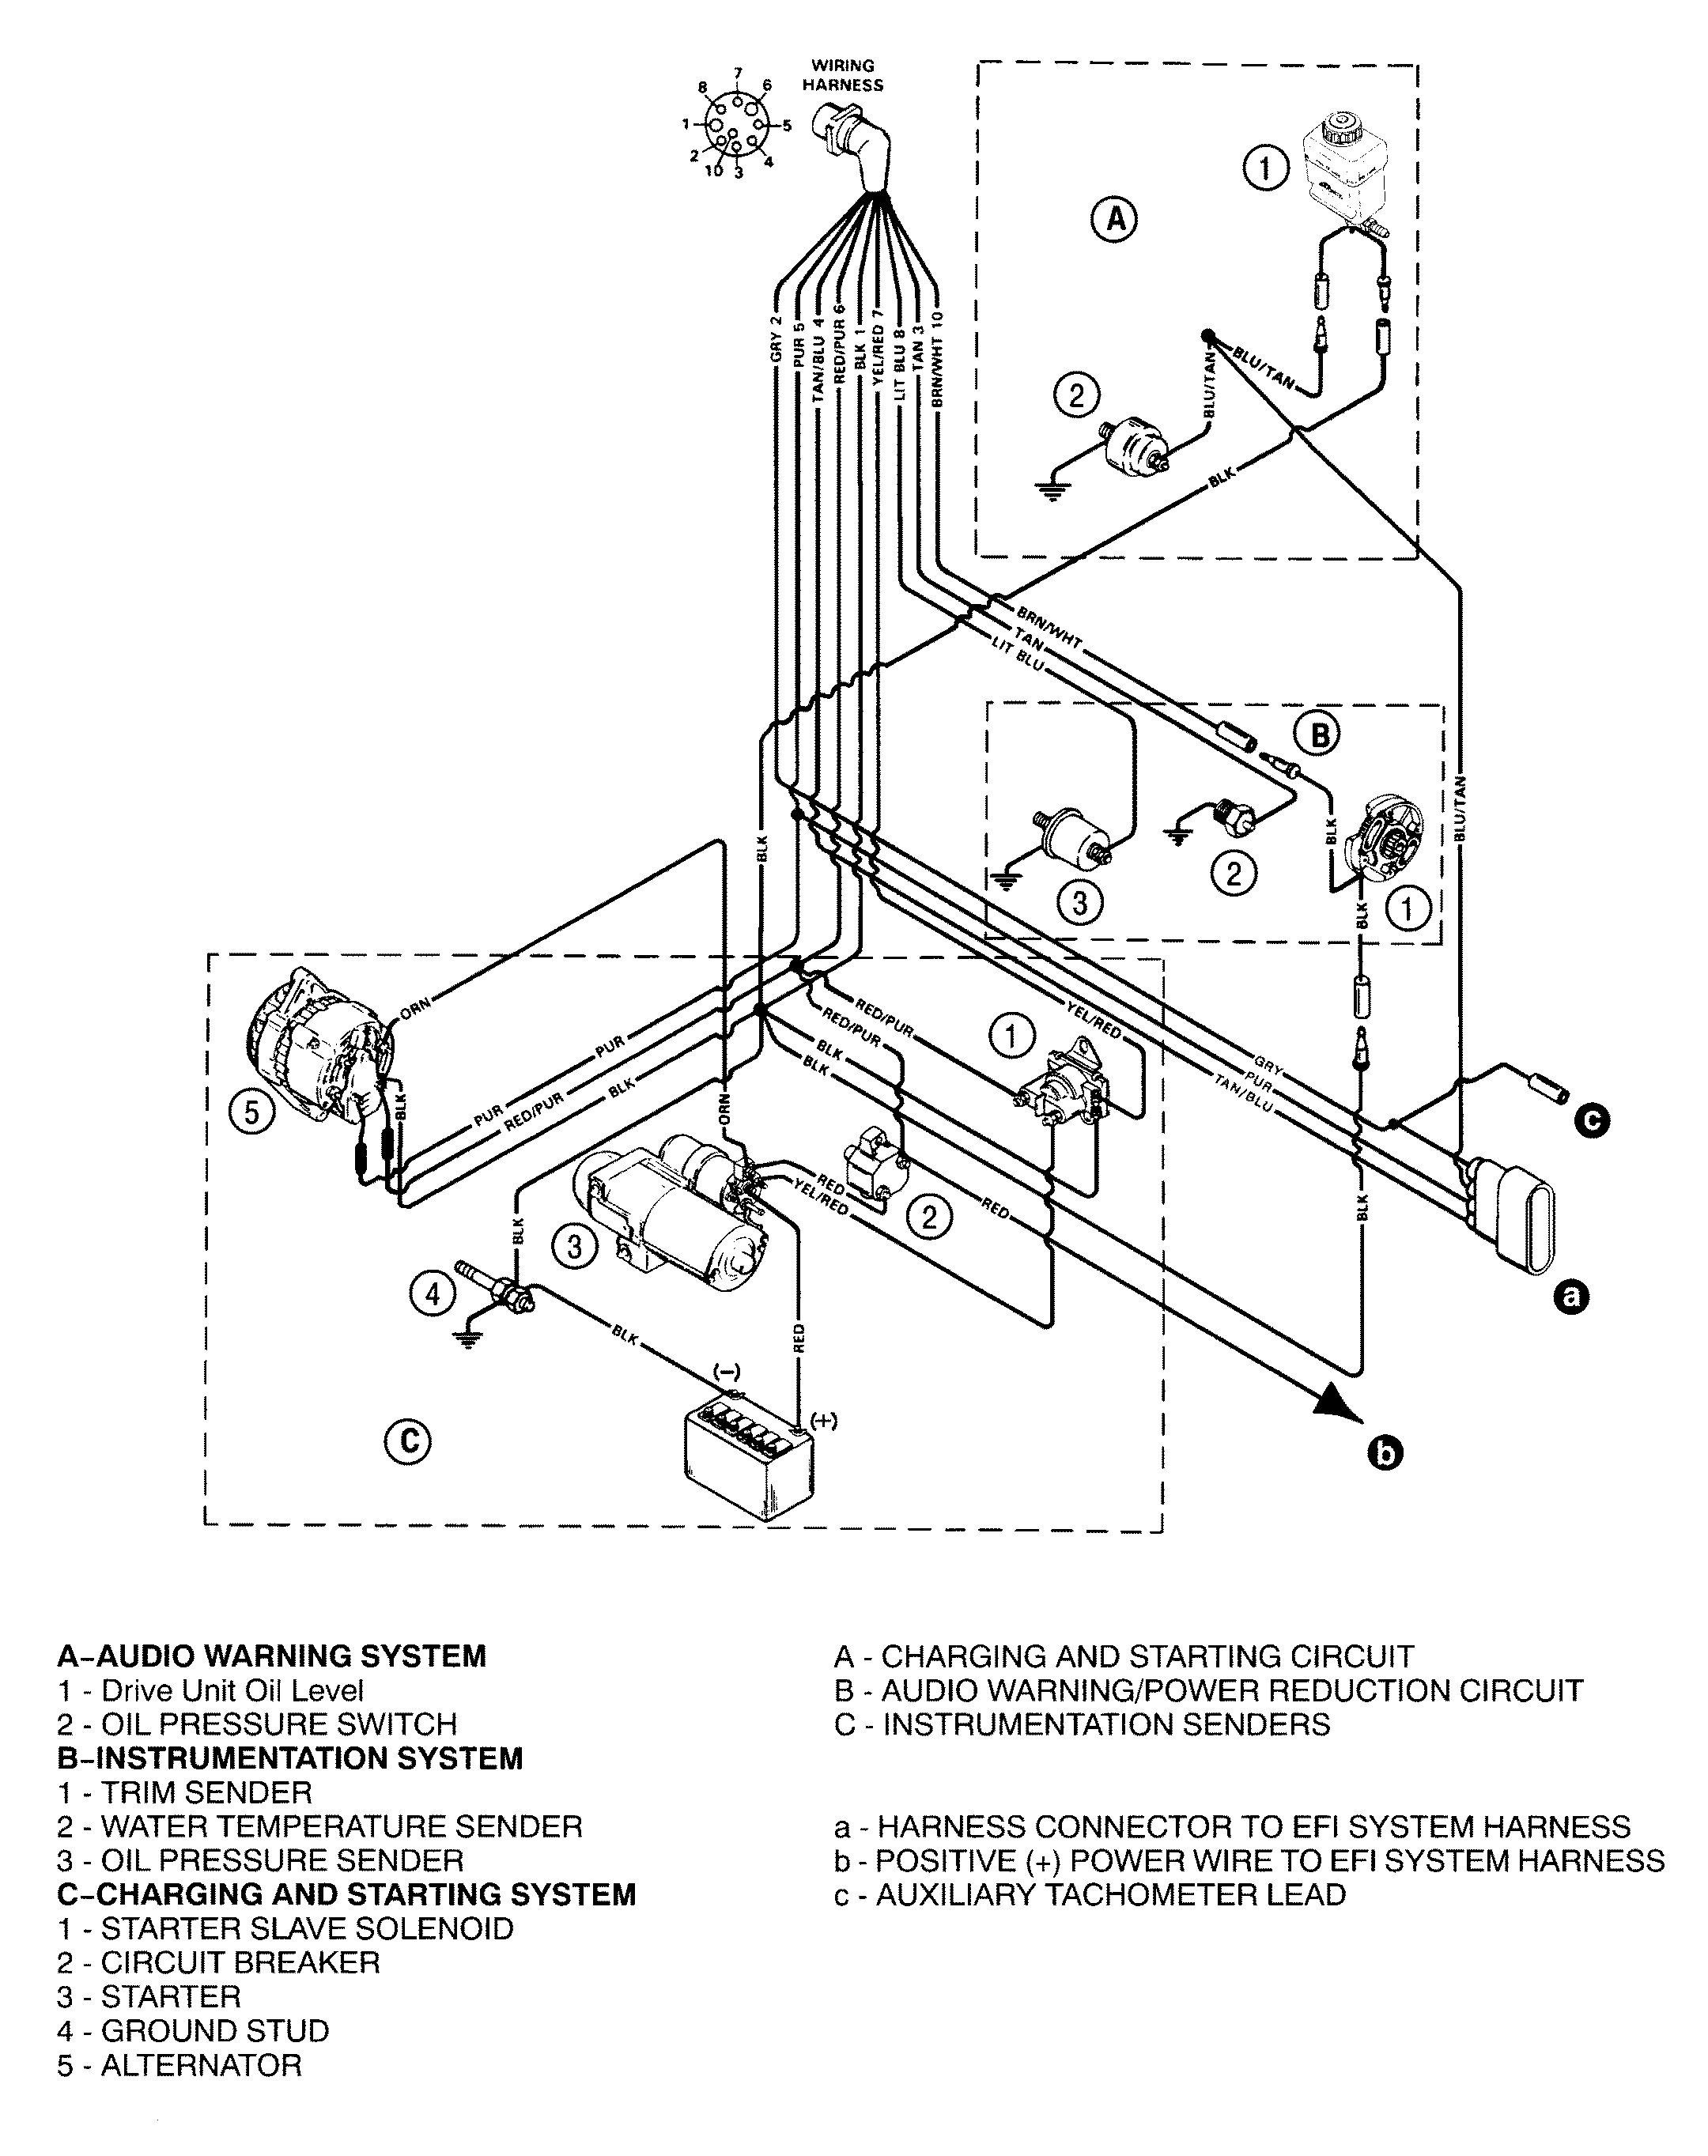 mercruiser engine harness diagram wiring diagram toolbox 8 2 mercruiser engine diagram wiring diagram library mercruiser [ 2160 x 2727 Pixel ]